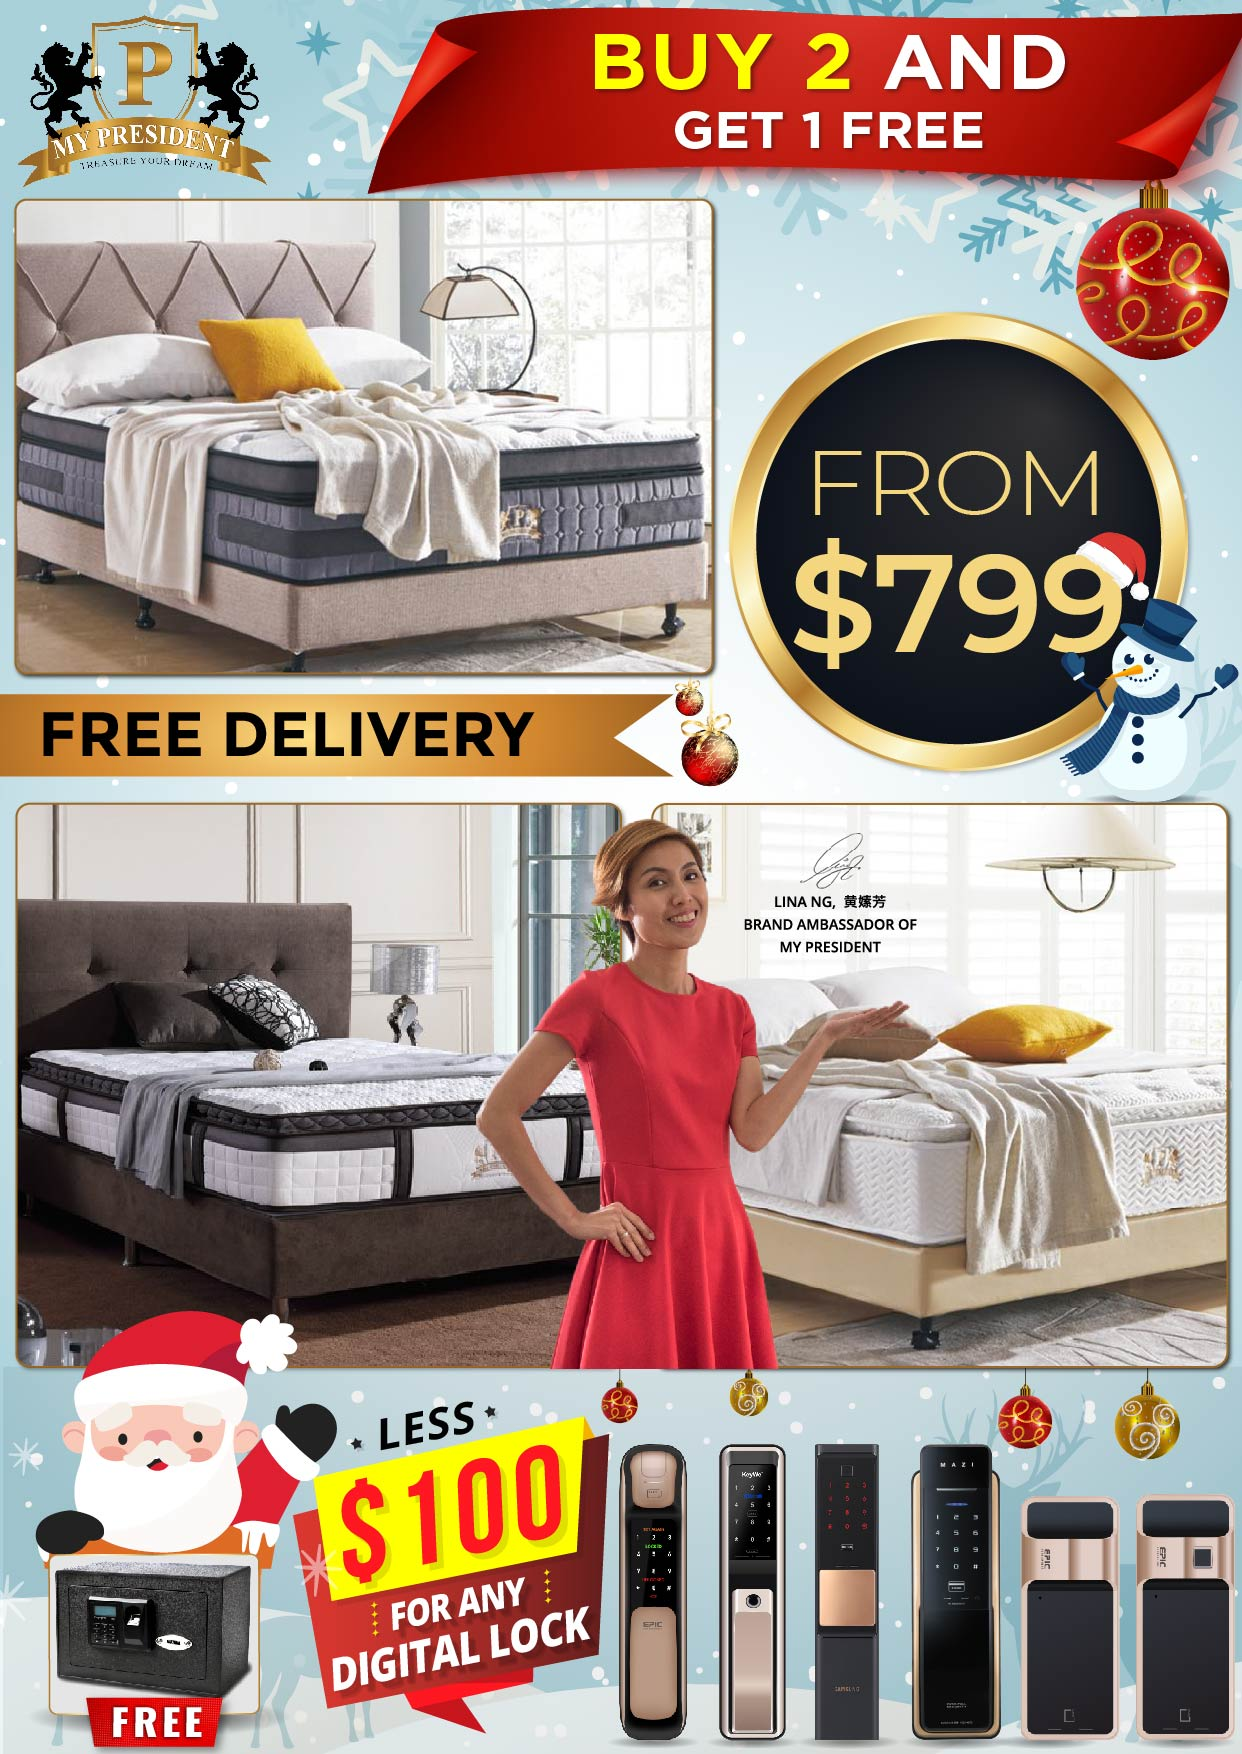 My President Mattress Buy 2 Get 1 FREE Mattress Christmas Promotions 2019